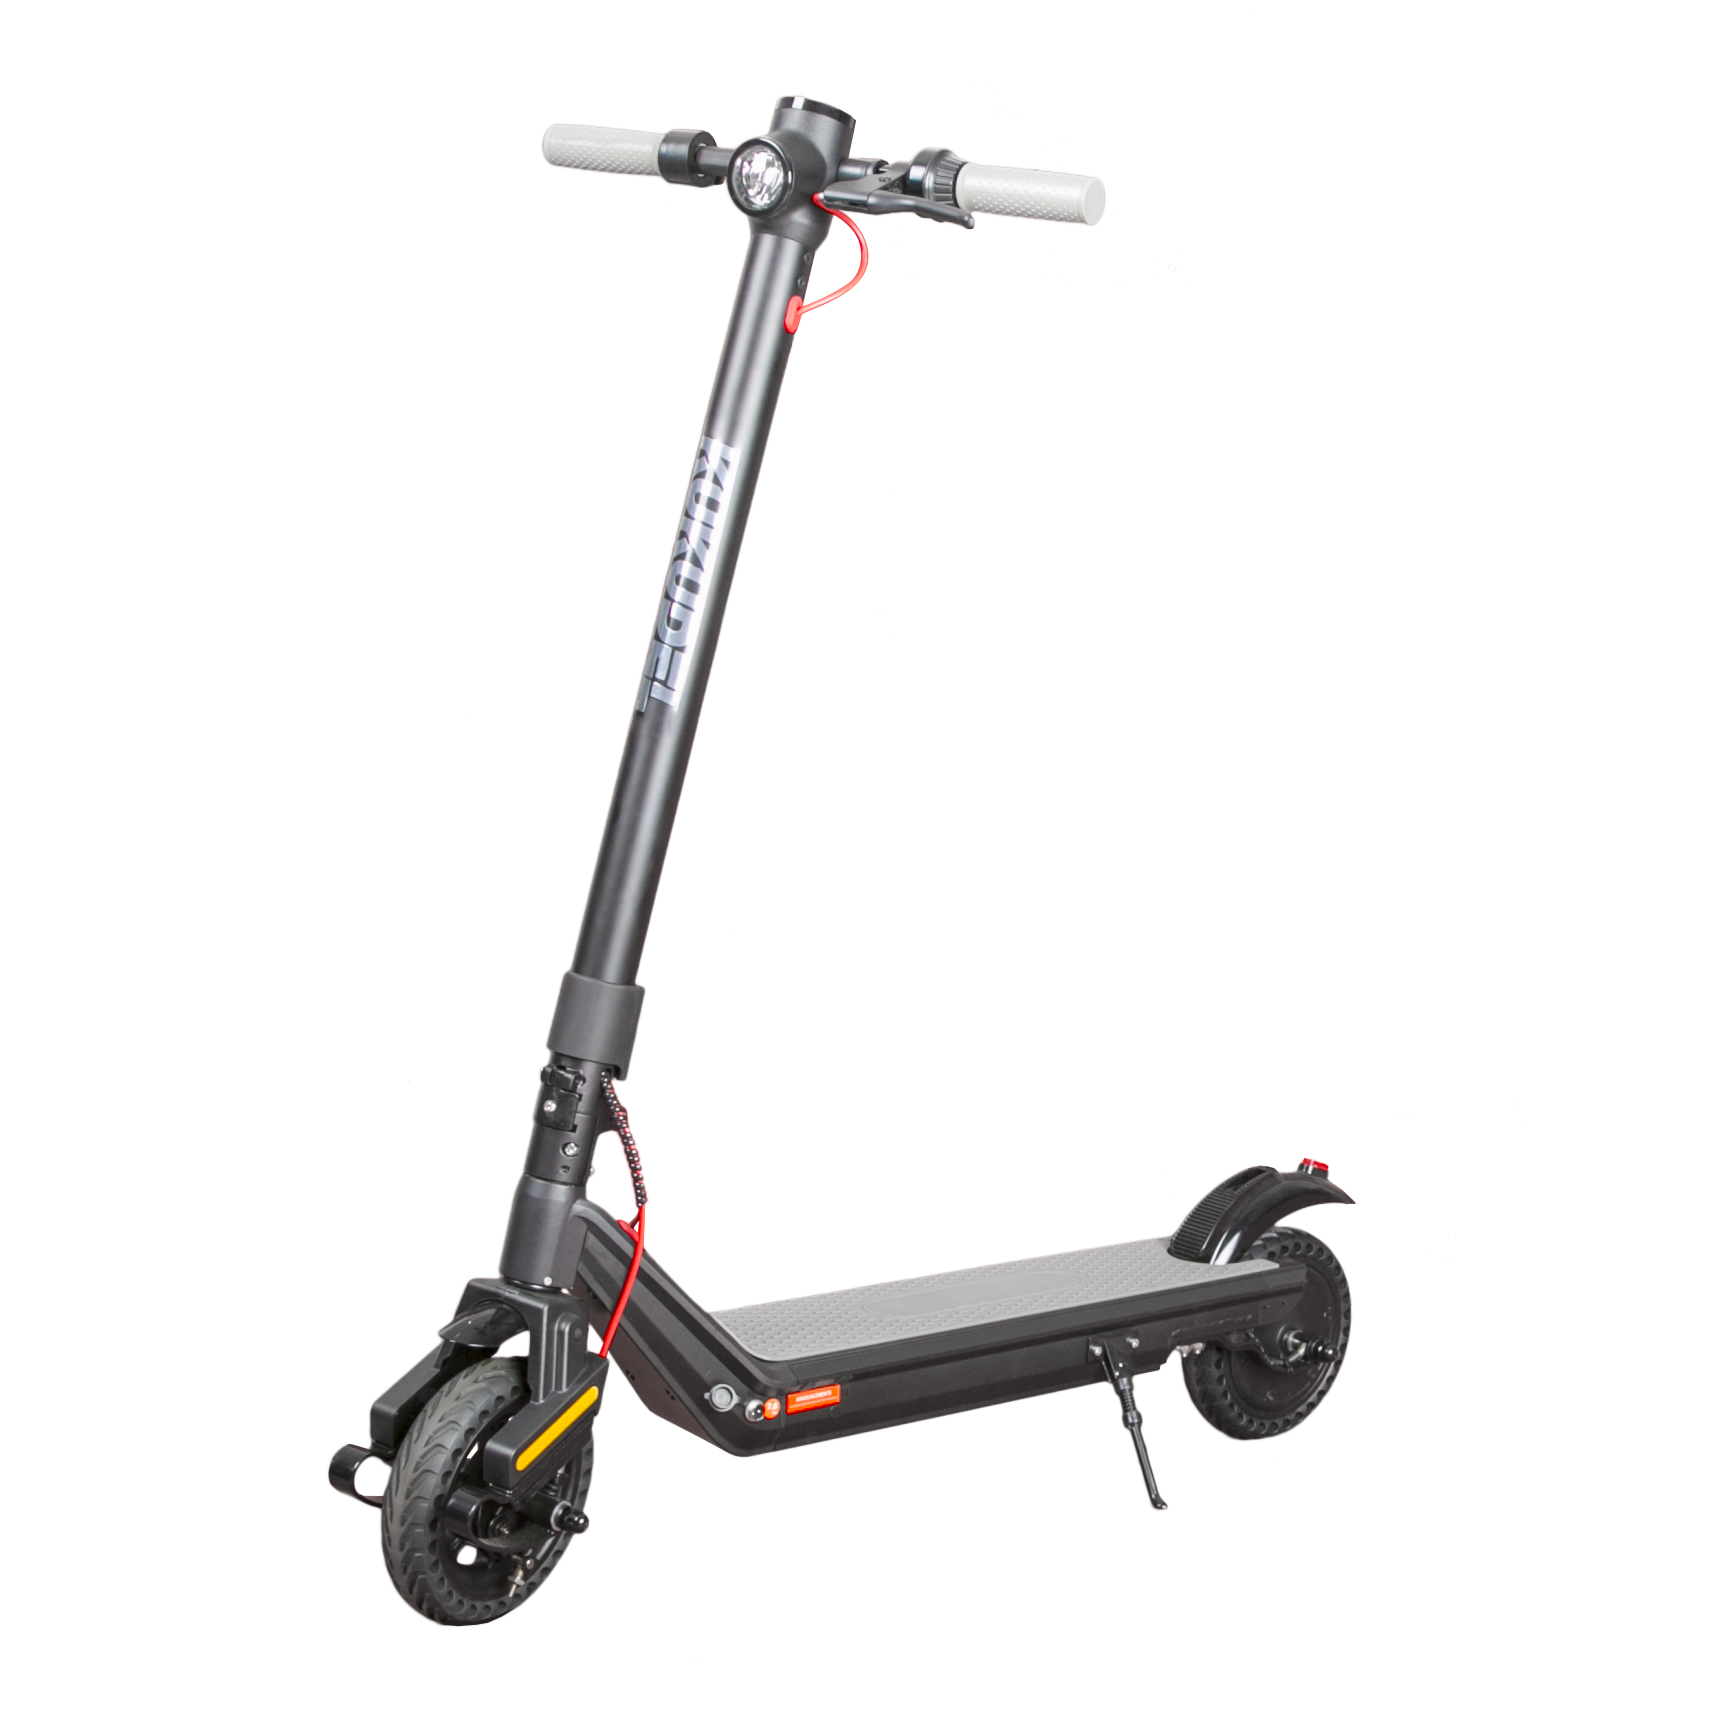 [EU DIRECT] KUKUDEL 856P Electric Scooter 36V 10Ah Battery 380W Brushless Motor 30Km/h Max Speed 35-40Km Mileage 100Kg Max Load 8.5Inch Scooter